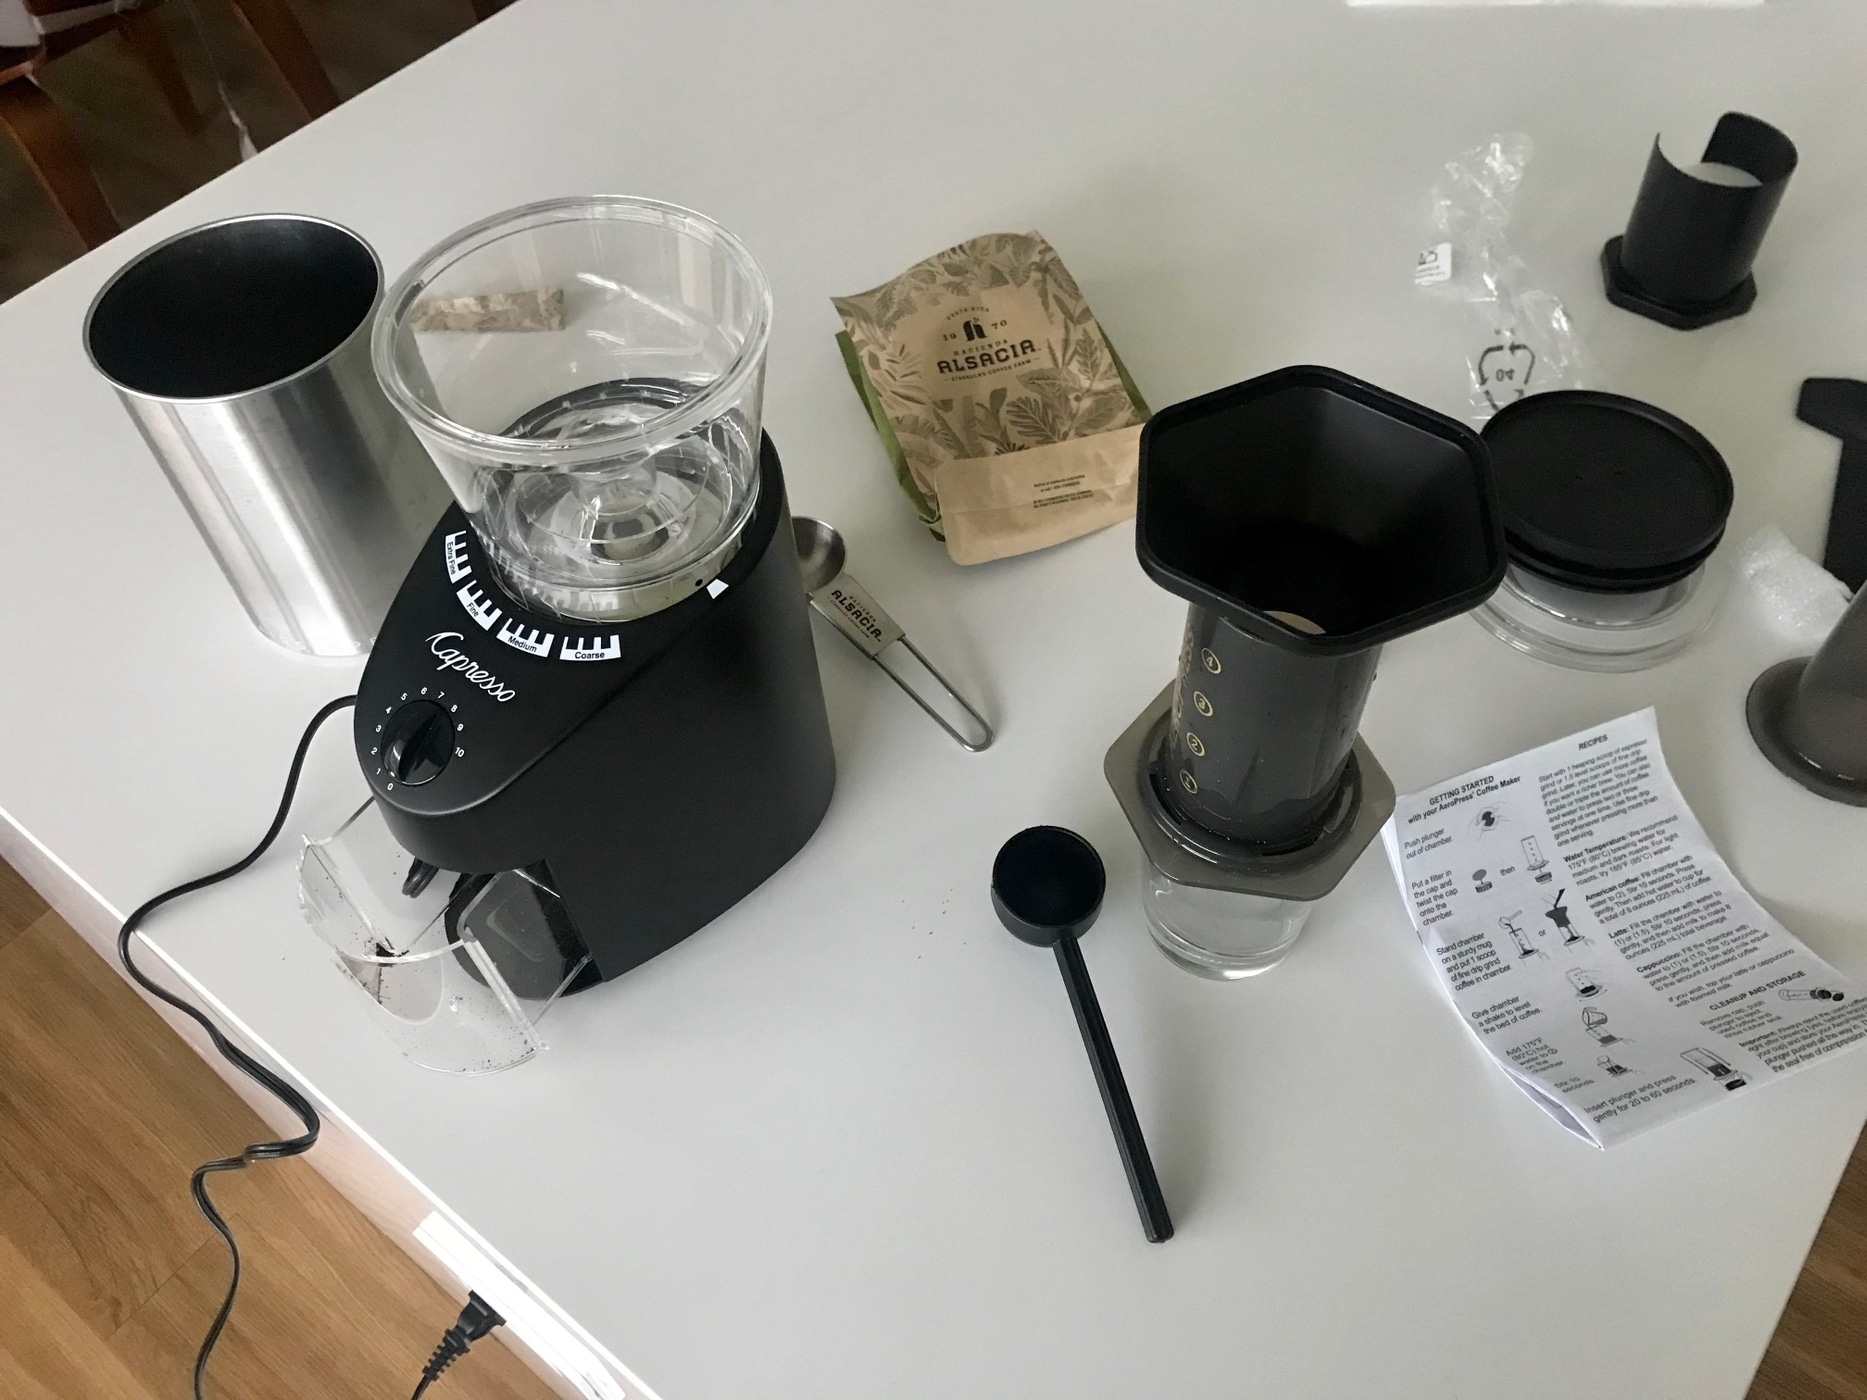 fathers day was really great for my coffee hobby.